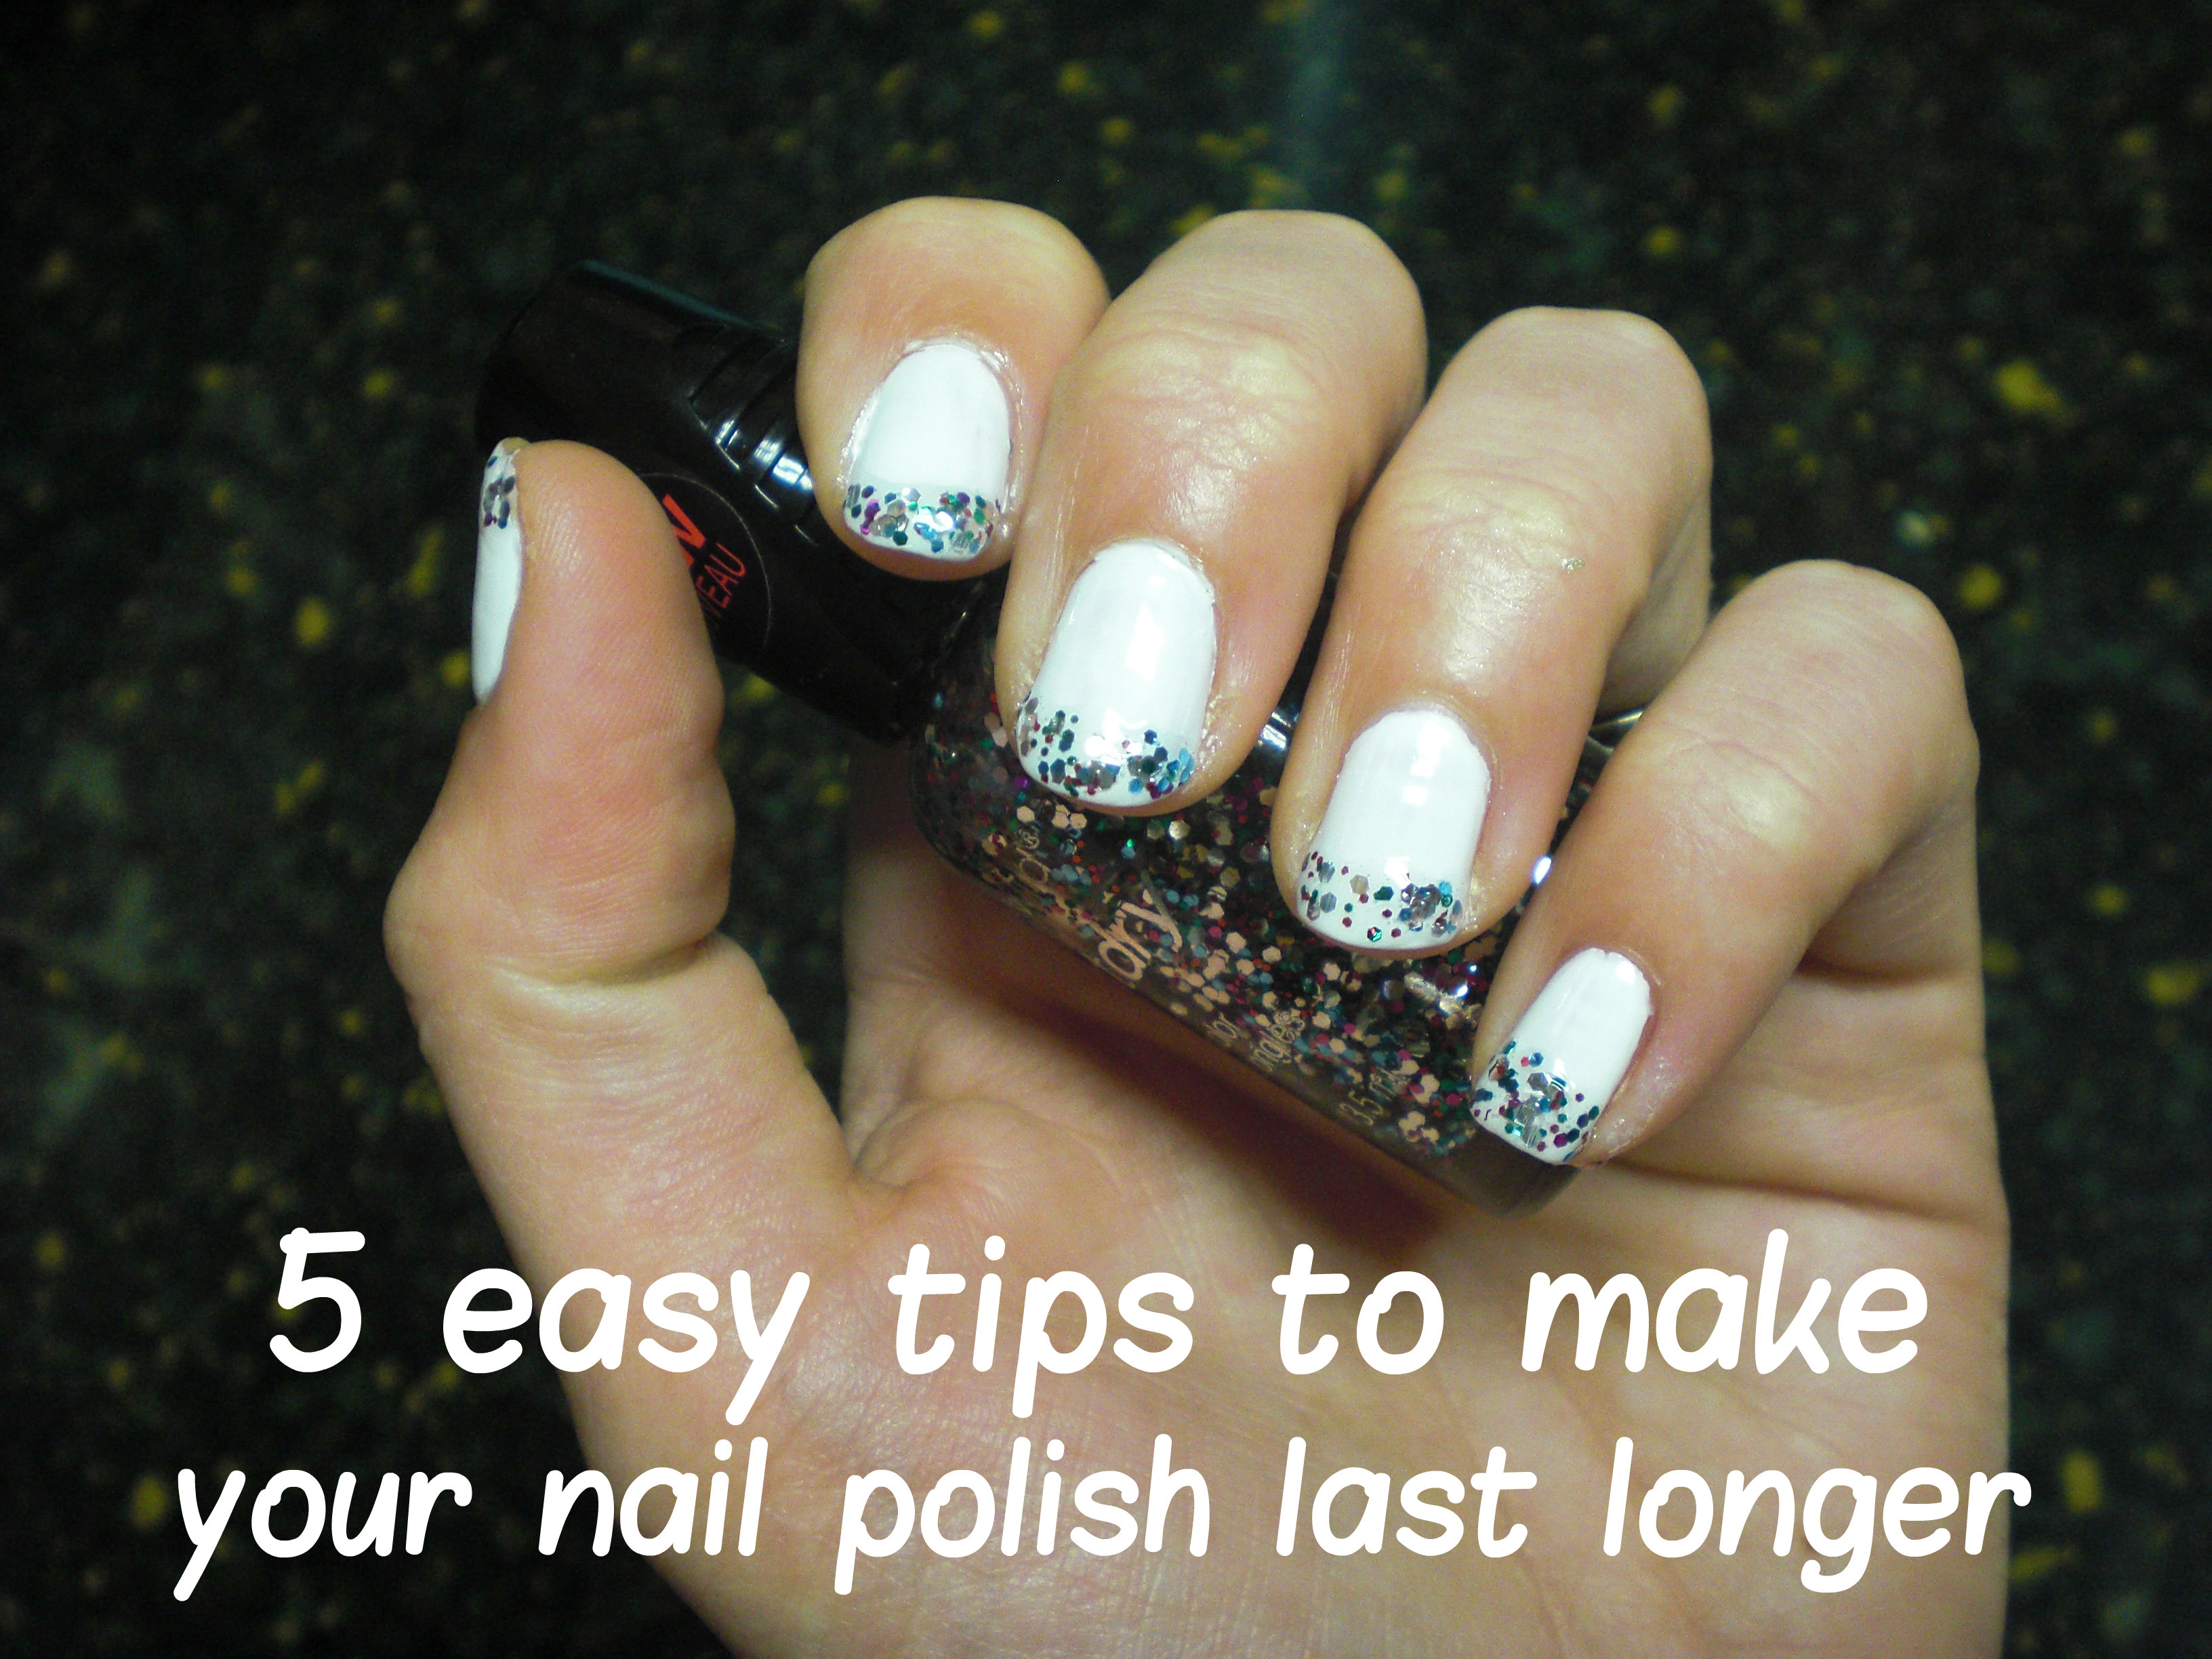 5 Easy Tips to Make Your Nail Polish Last Longer | All That Glitters